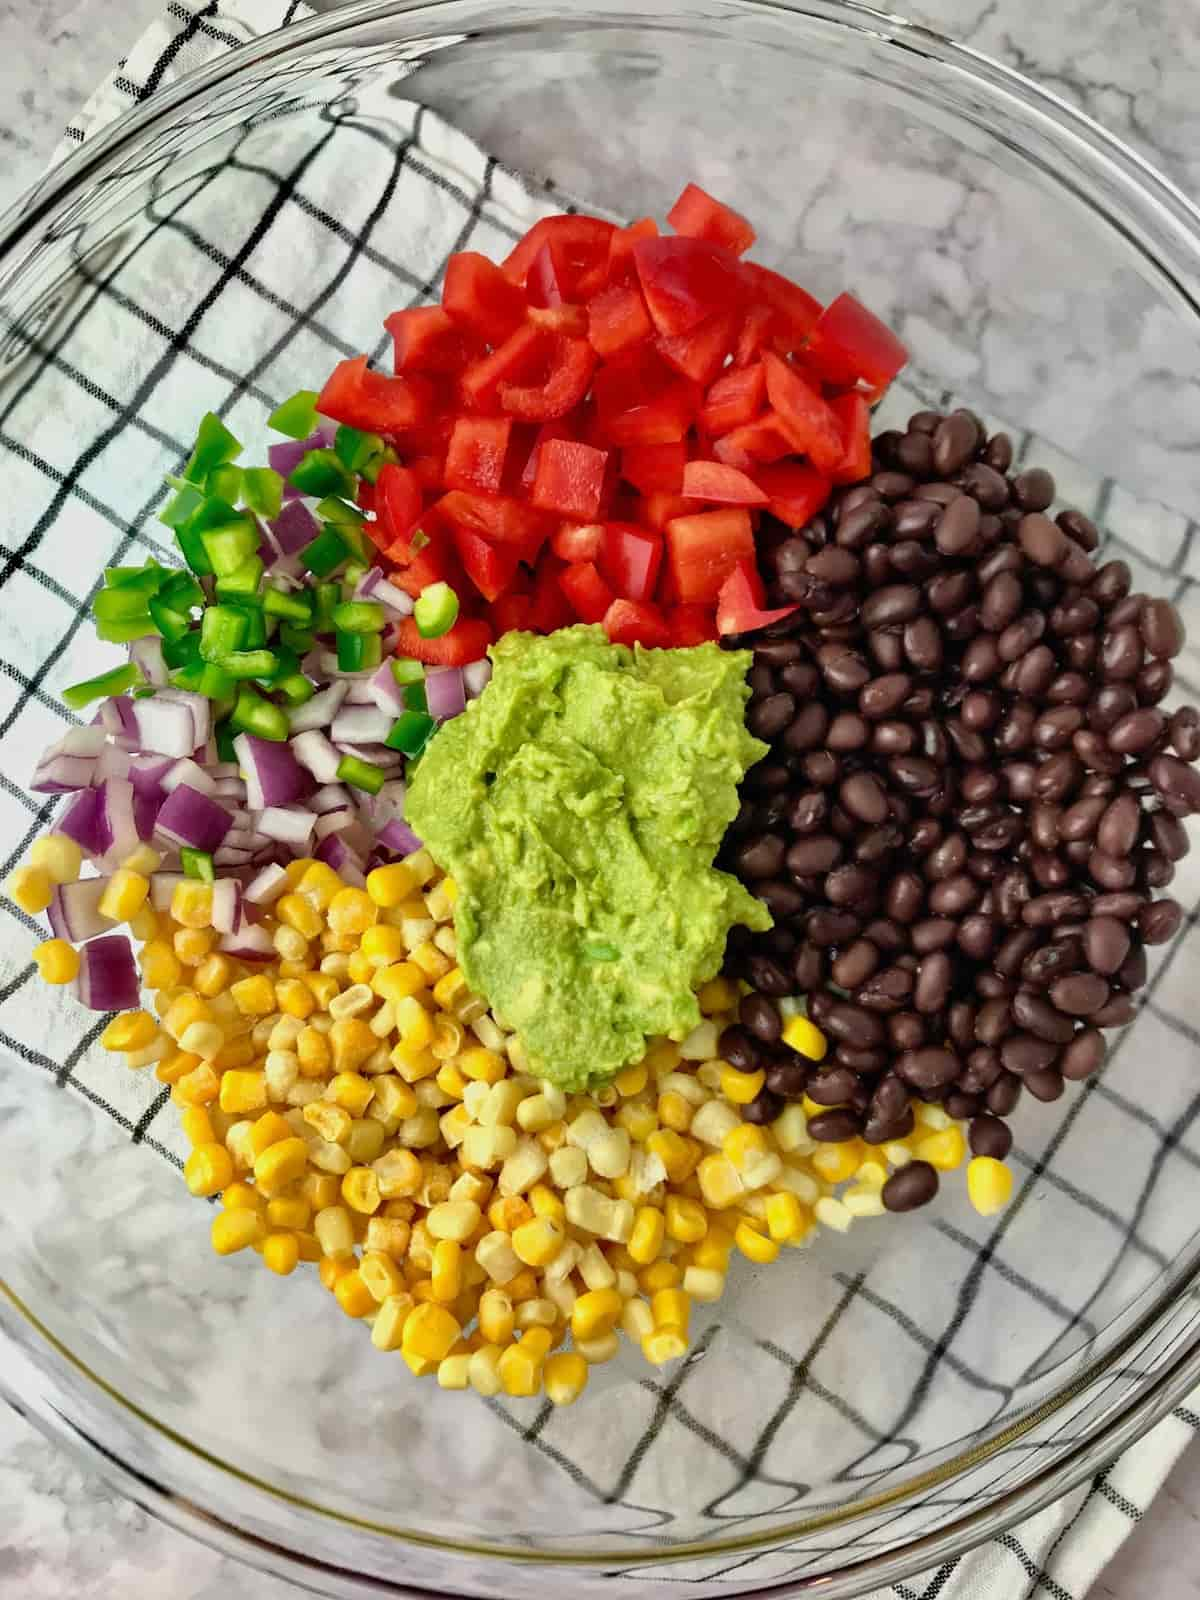 A bowl with red pepper, red onion, corn, black beans, jalapeno pepper and avocado.